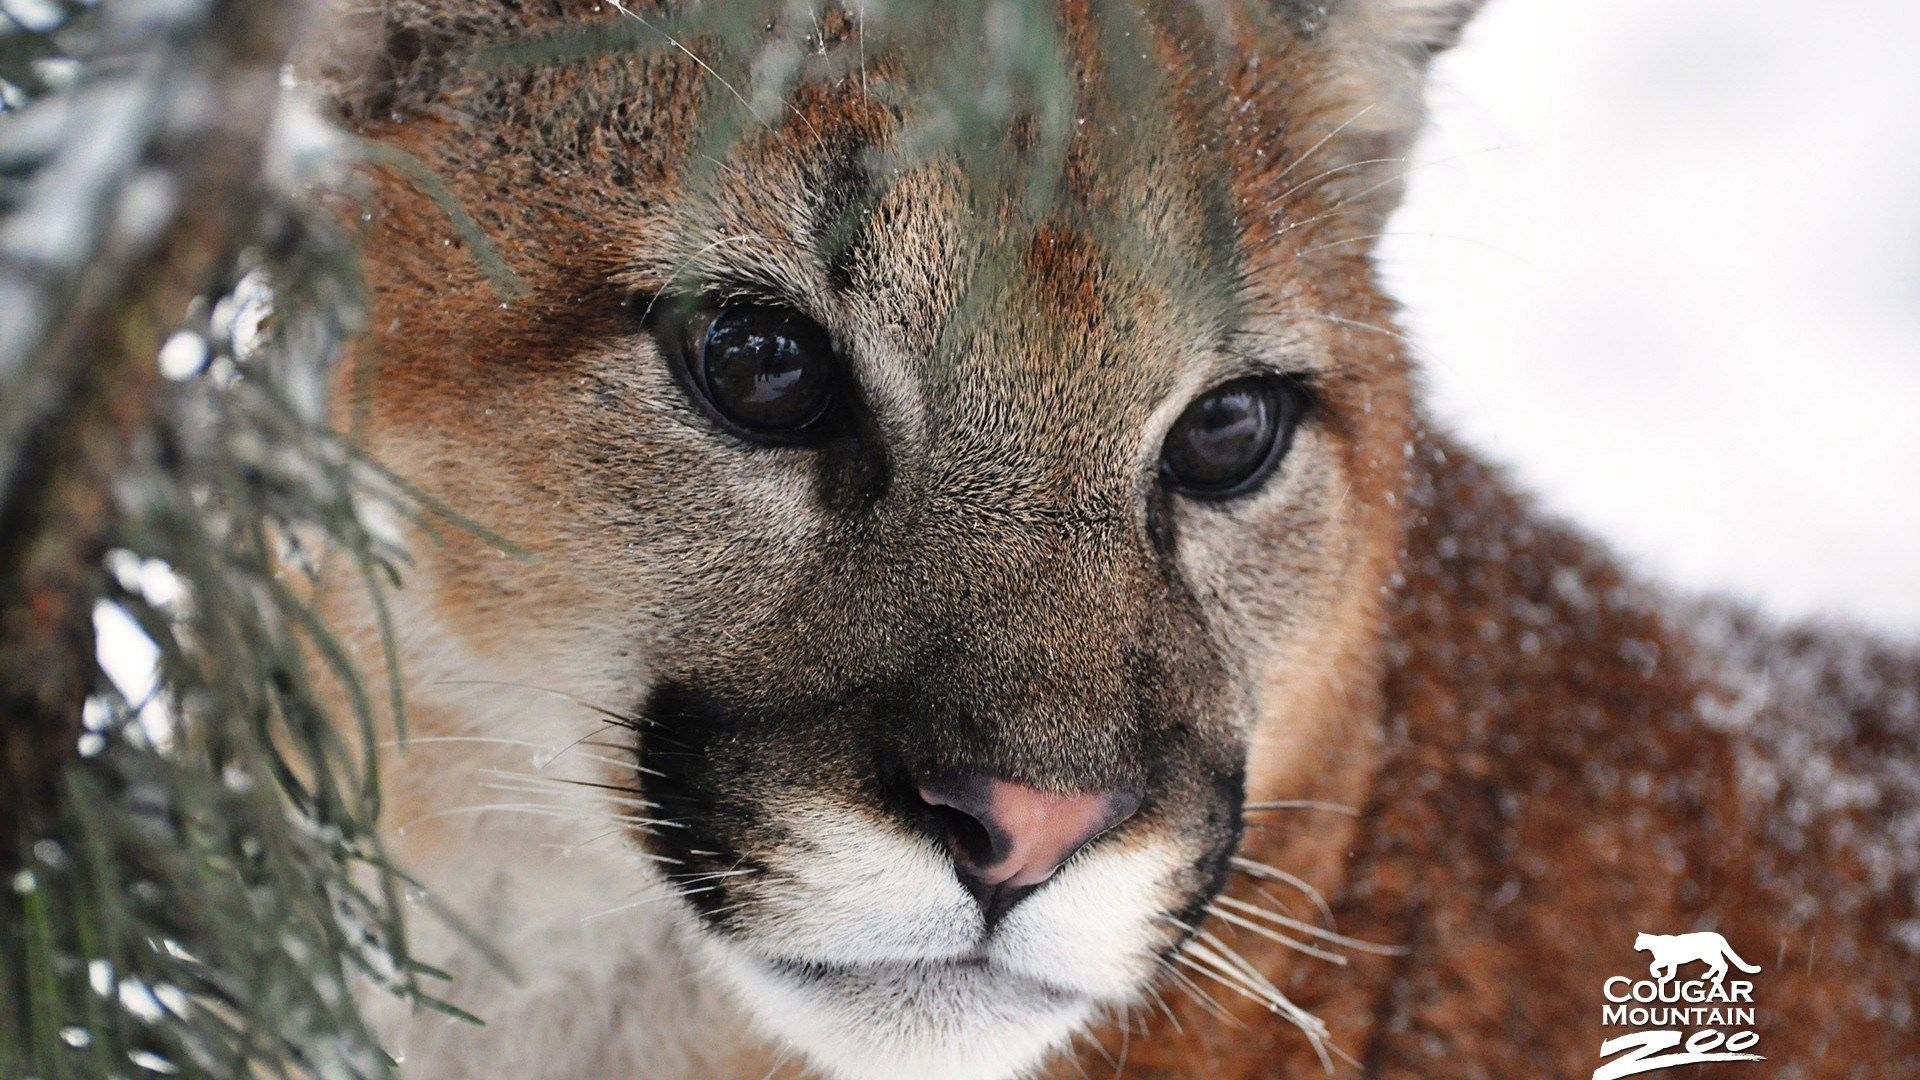 Cougar Hd 1080p picture